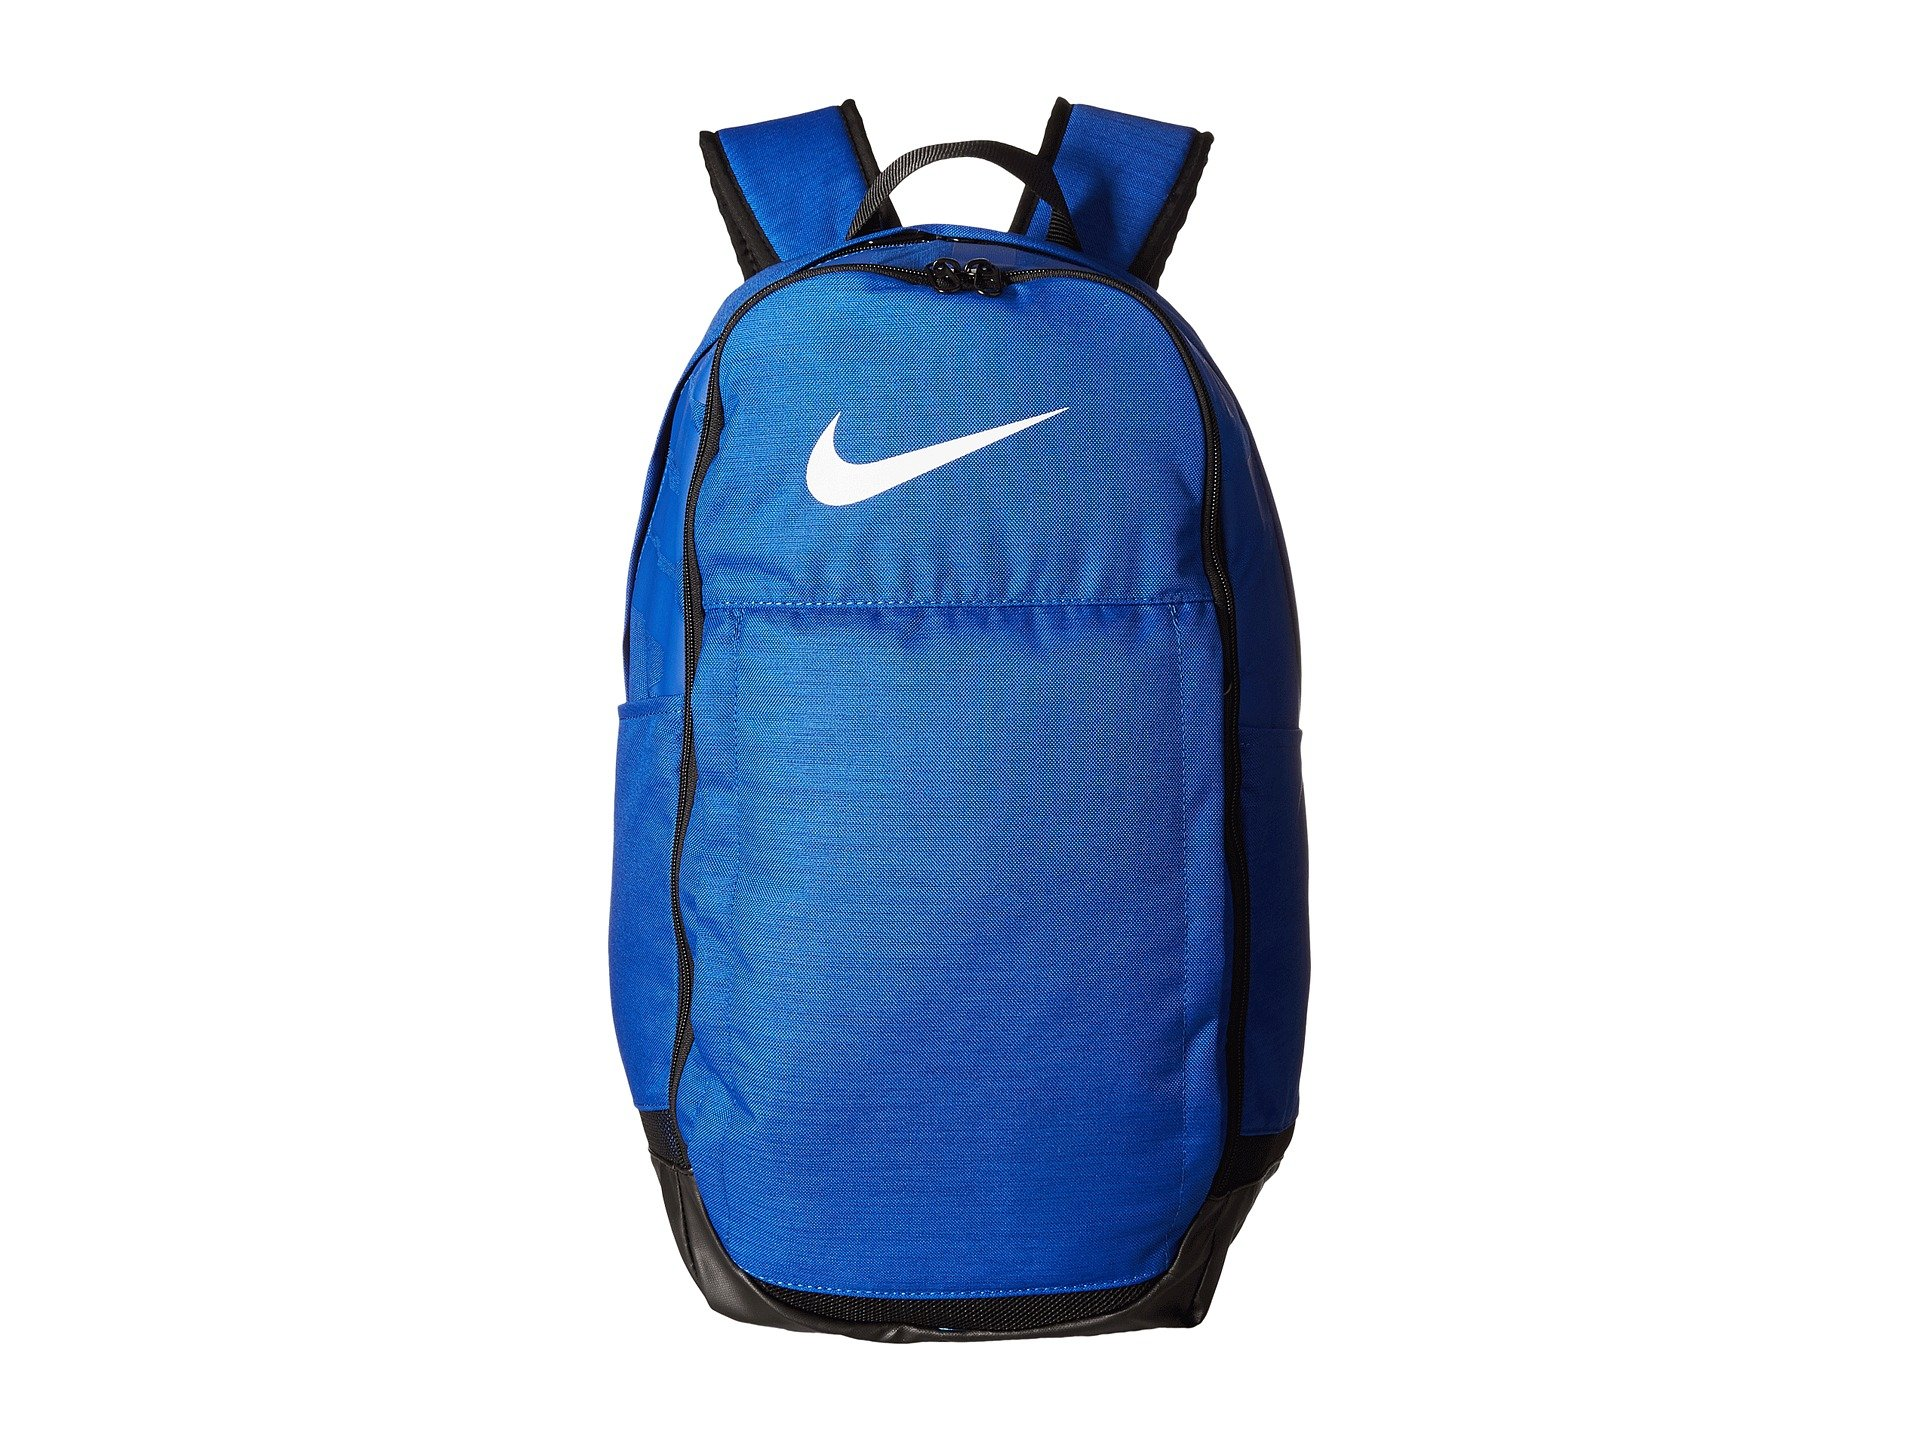 Backpack Nike black Large Extra Royal Brasilia Game white qUU4tr